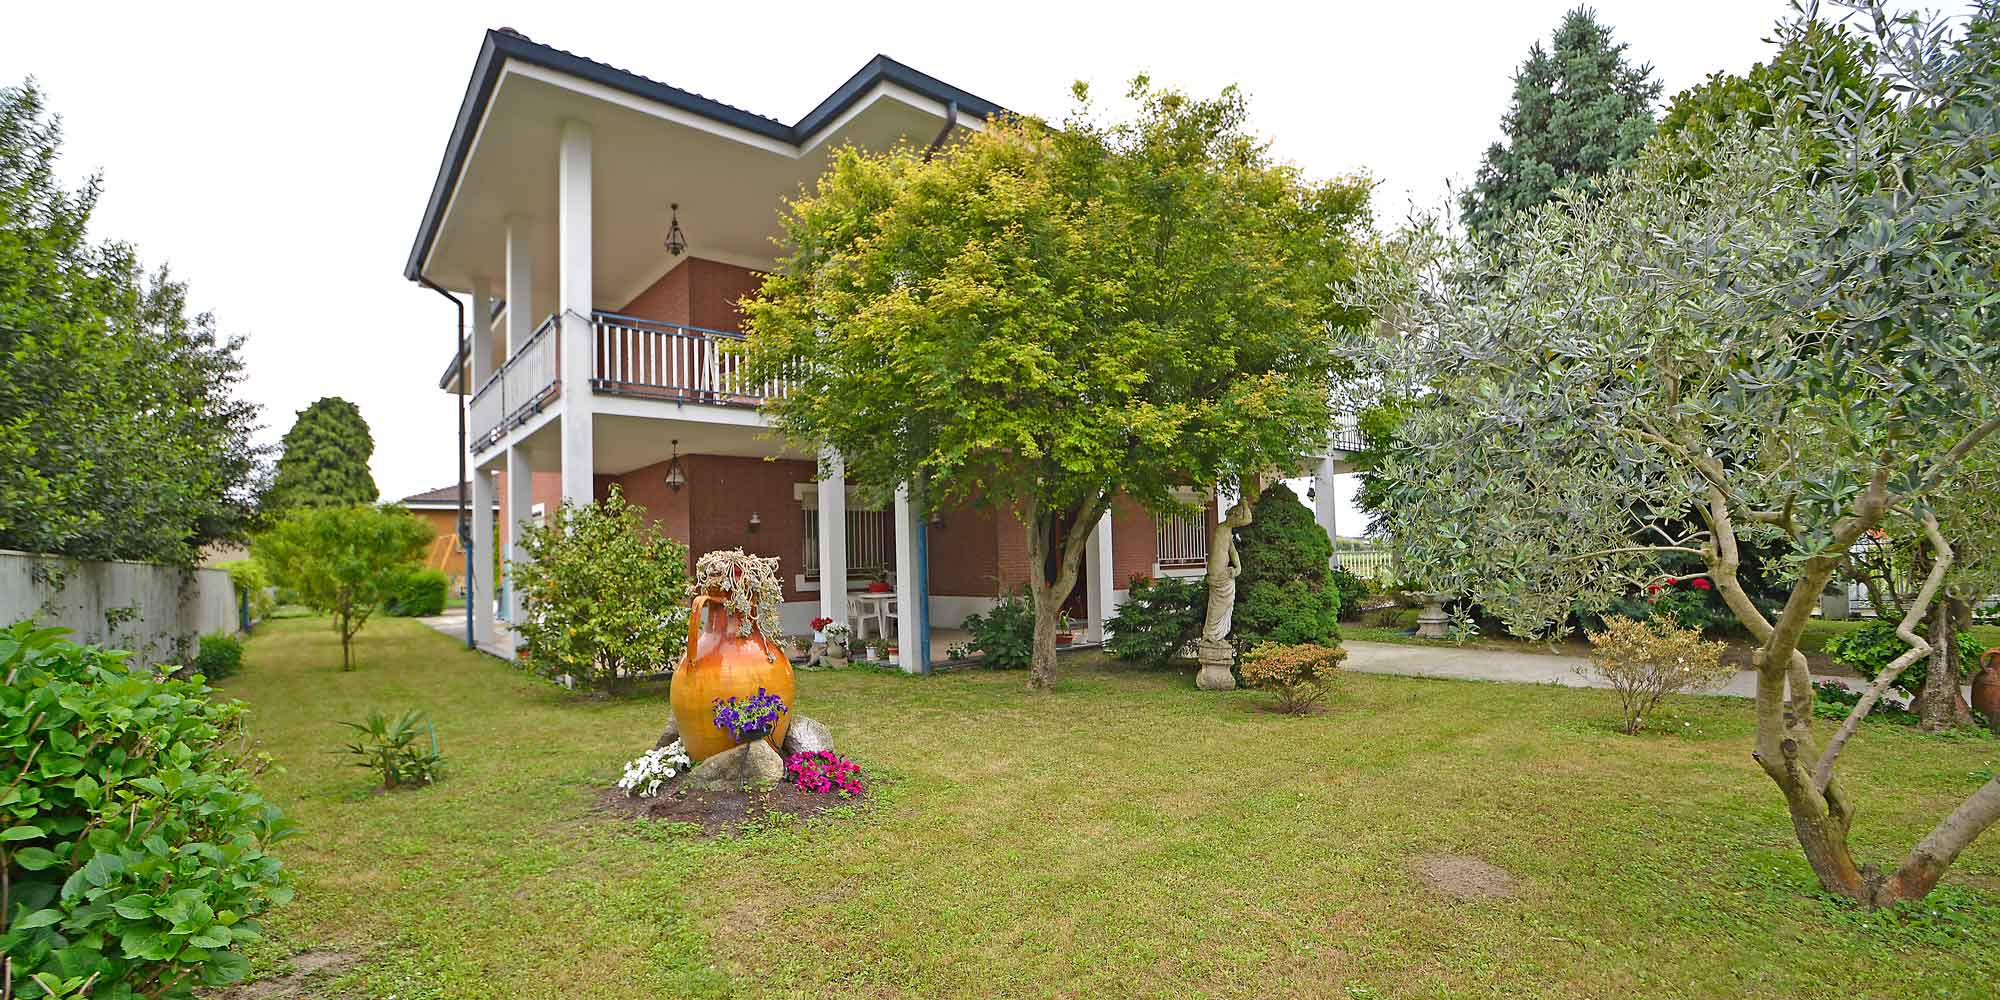 #1553 Detached house with garden